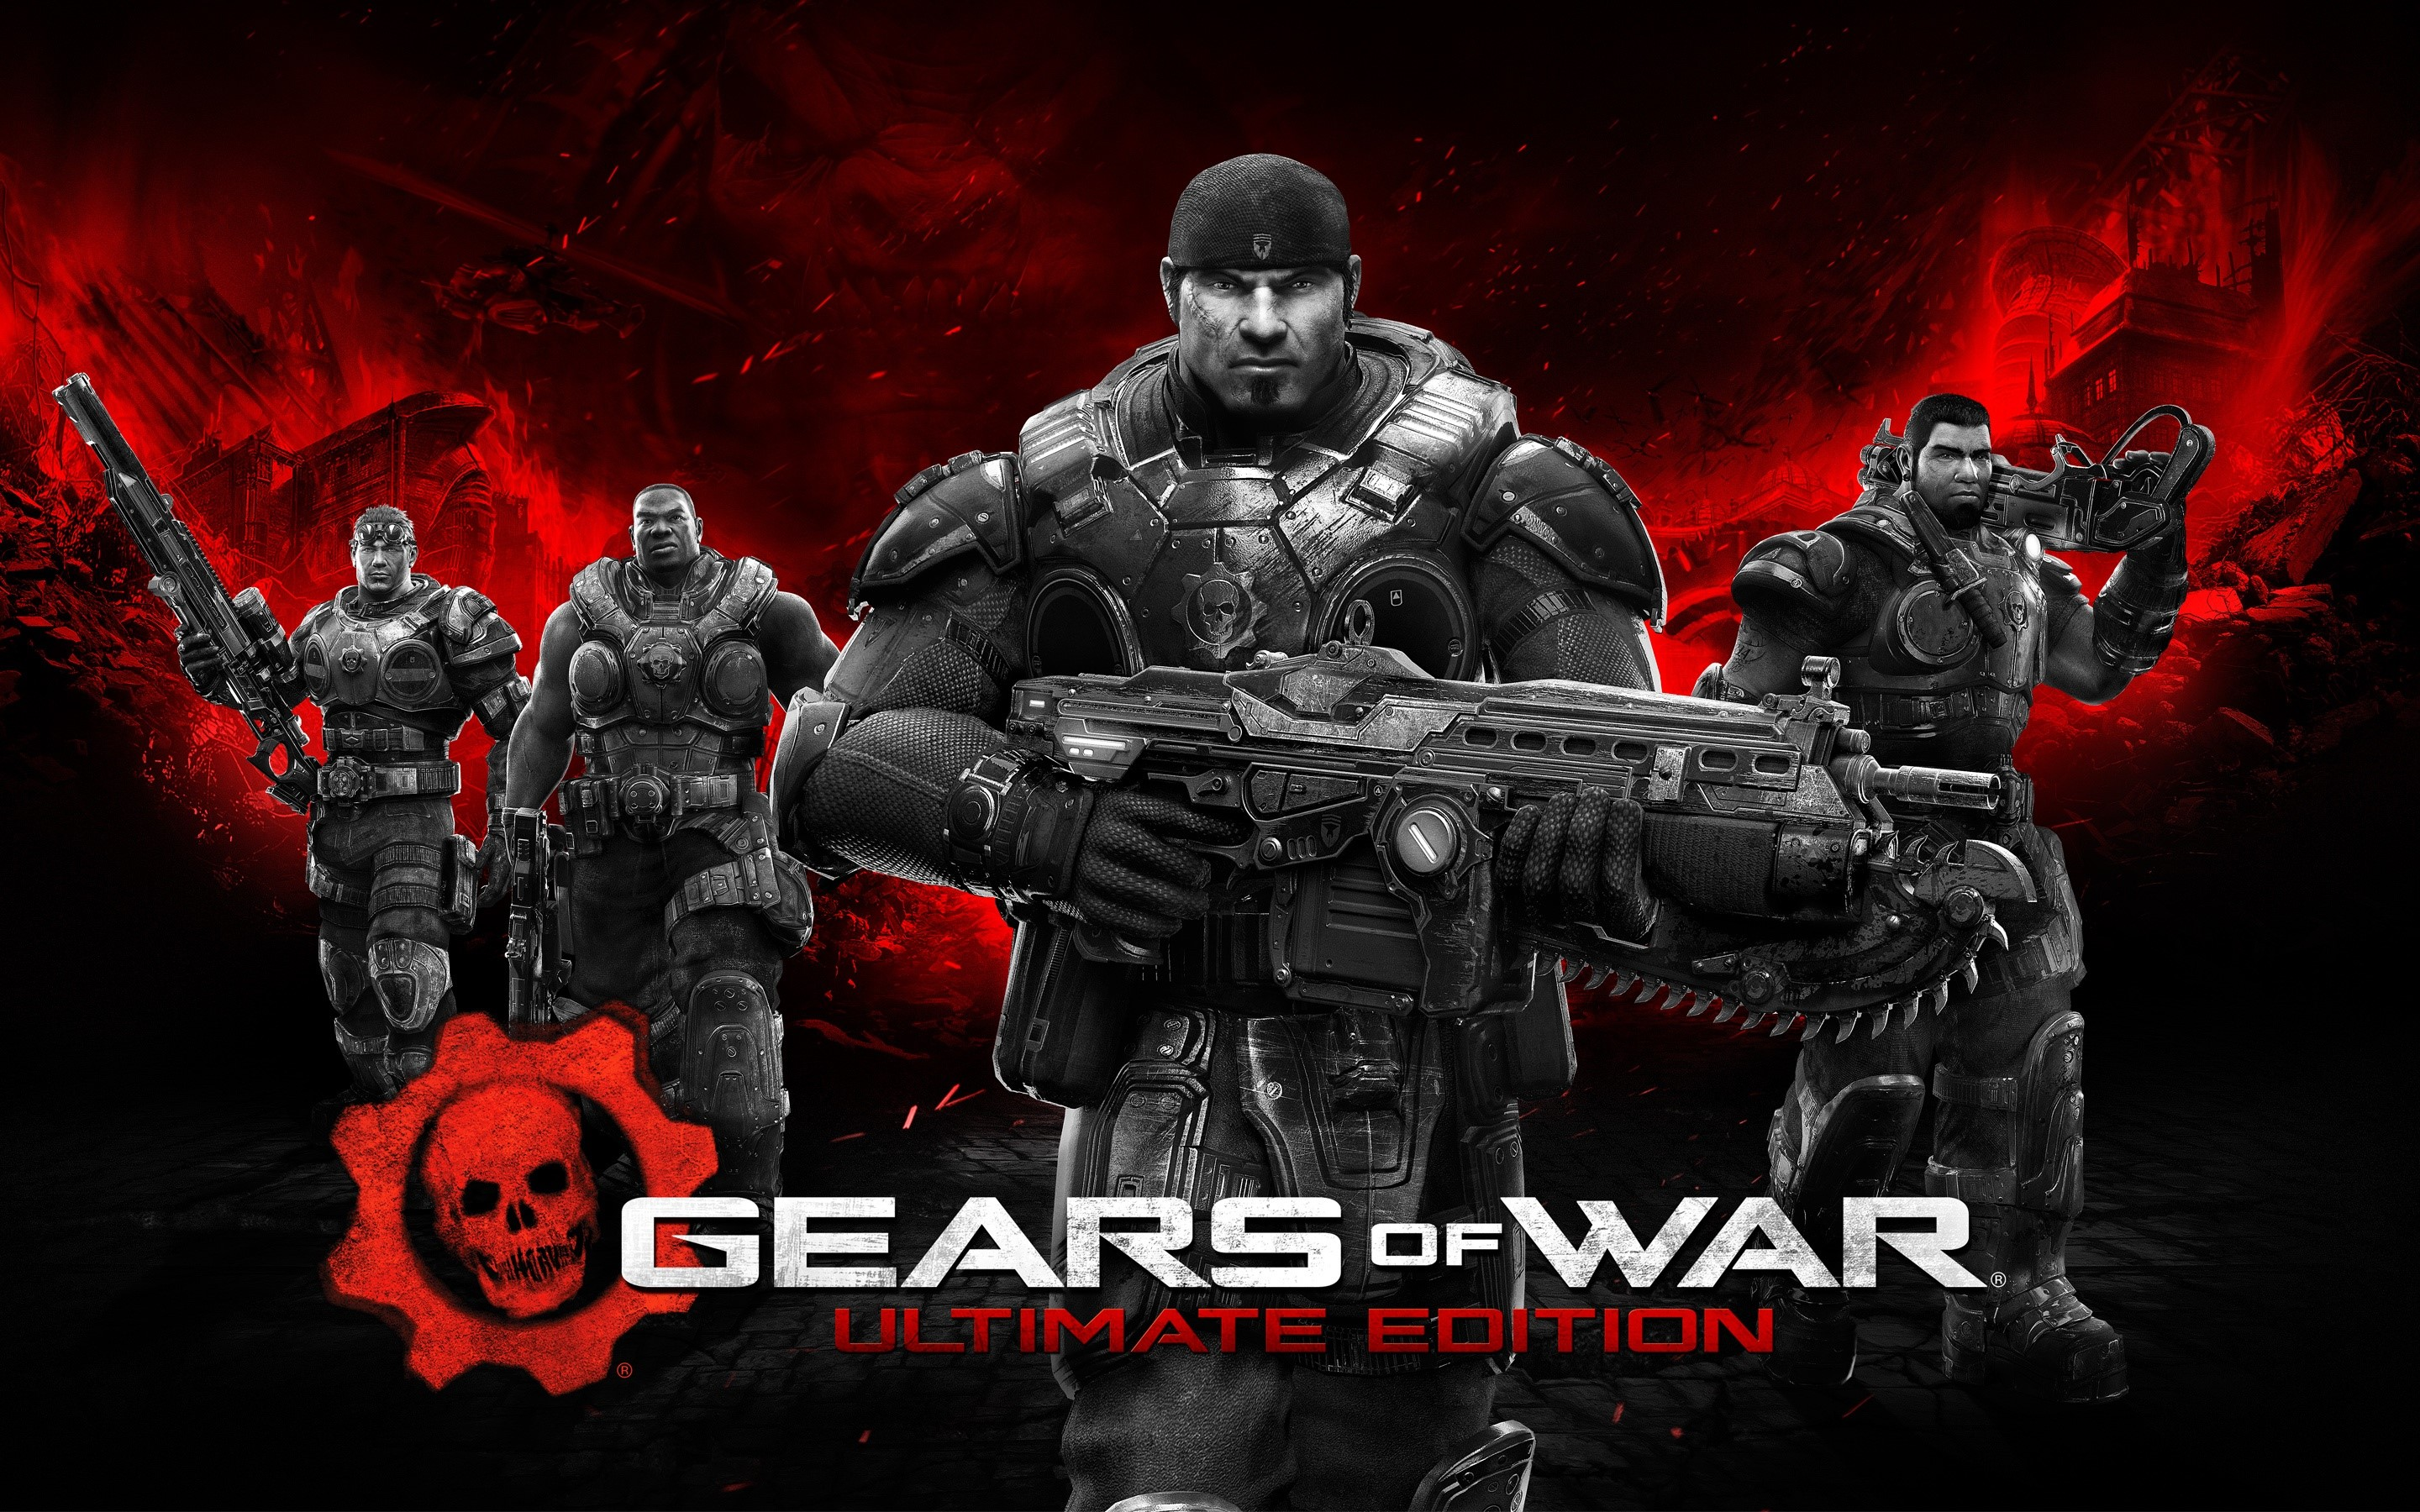 Fondo de pantalla de Gears Of War Ultimate Edition Imágenes